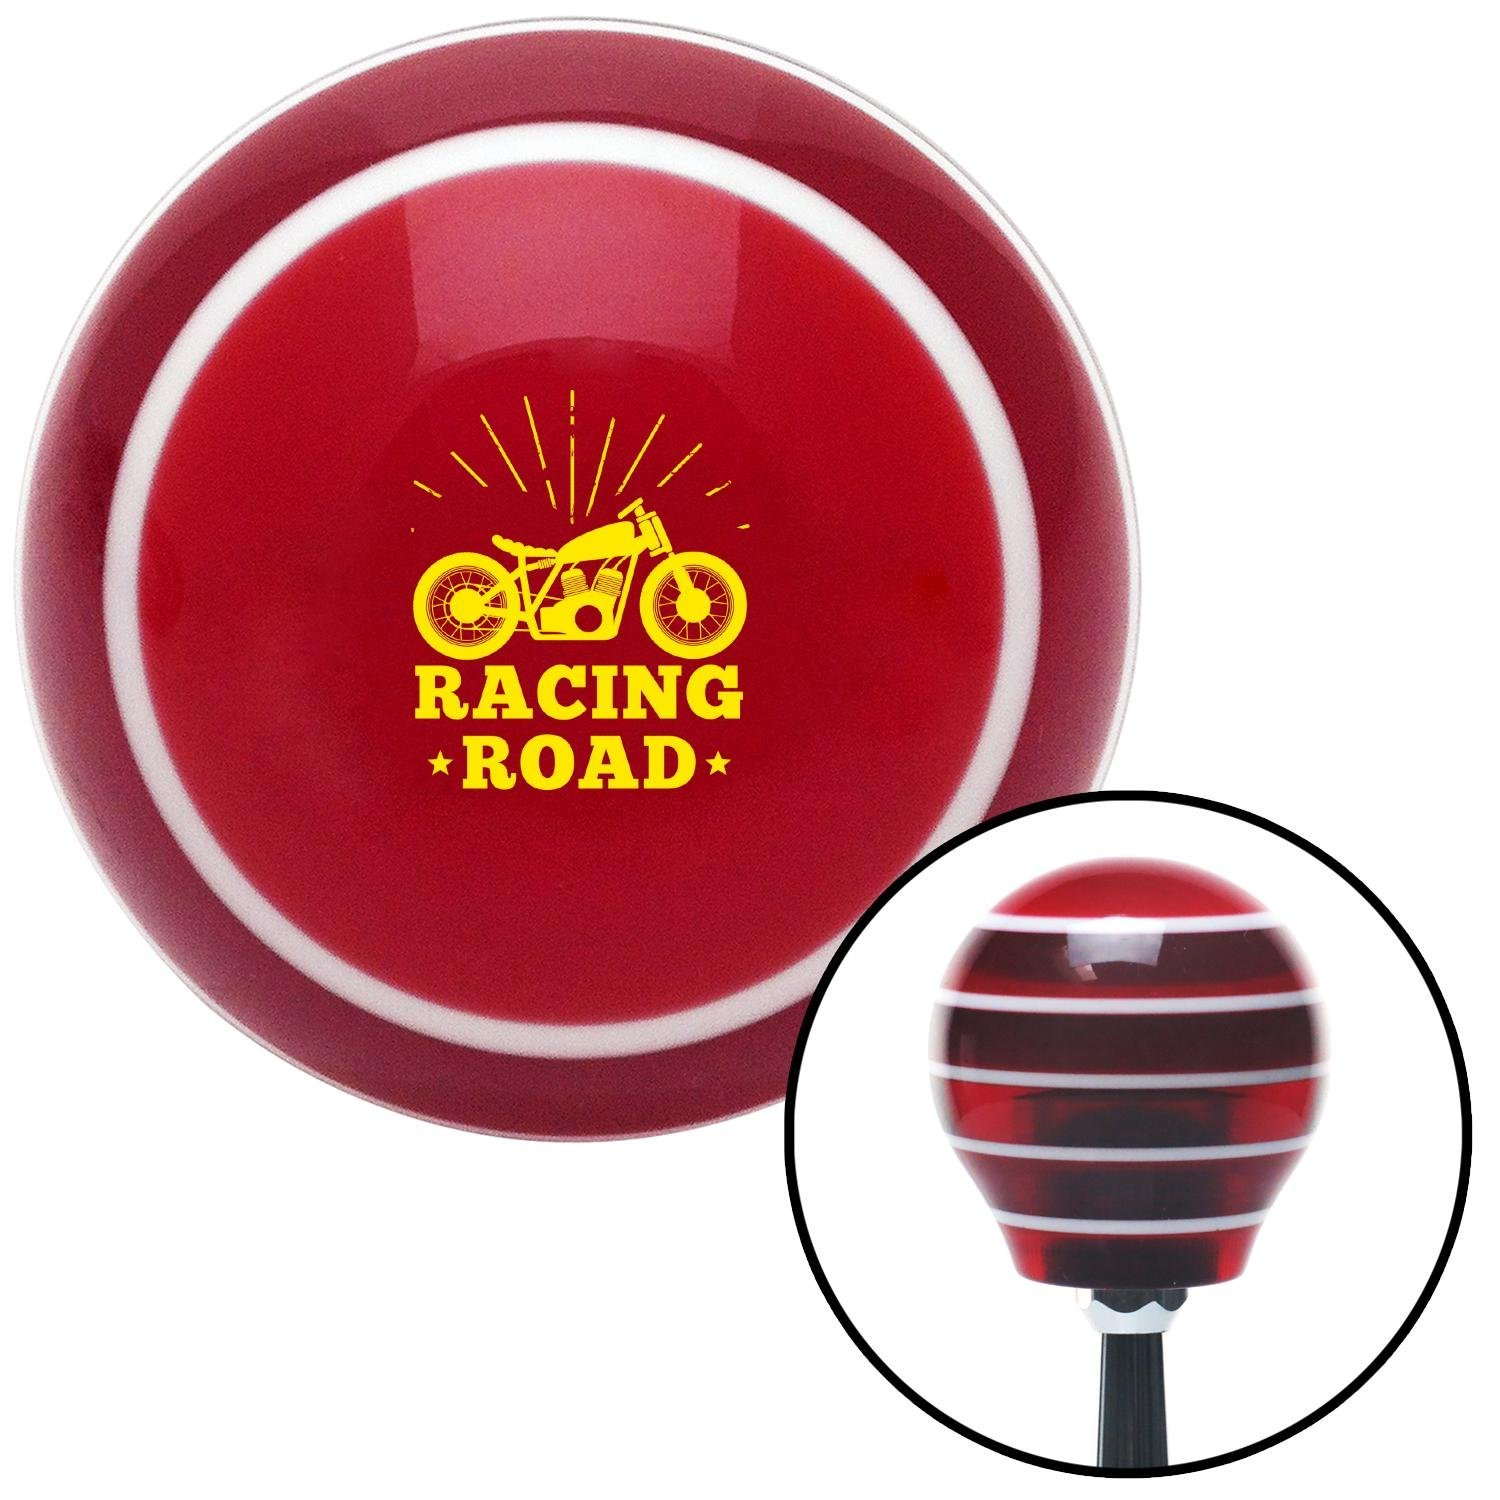 Red Officer 04 - Major and Lt. Colonel American Shifter 213915 Ivory Flame Shift Knob with M16 x 1.5 Insert